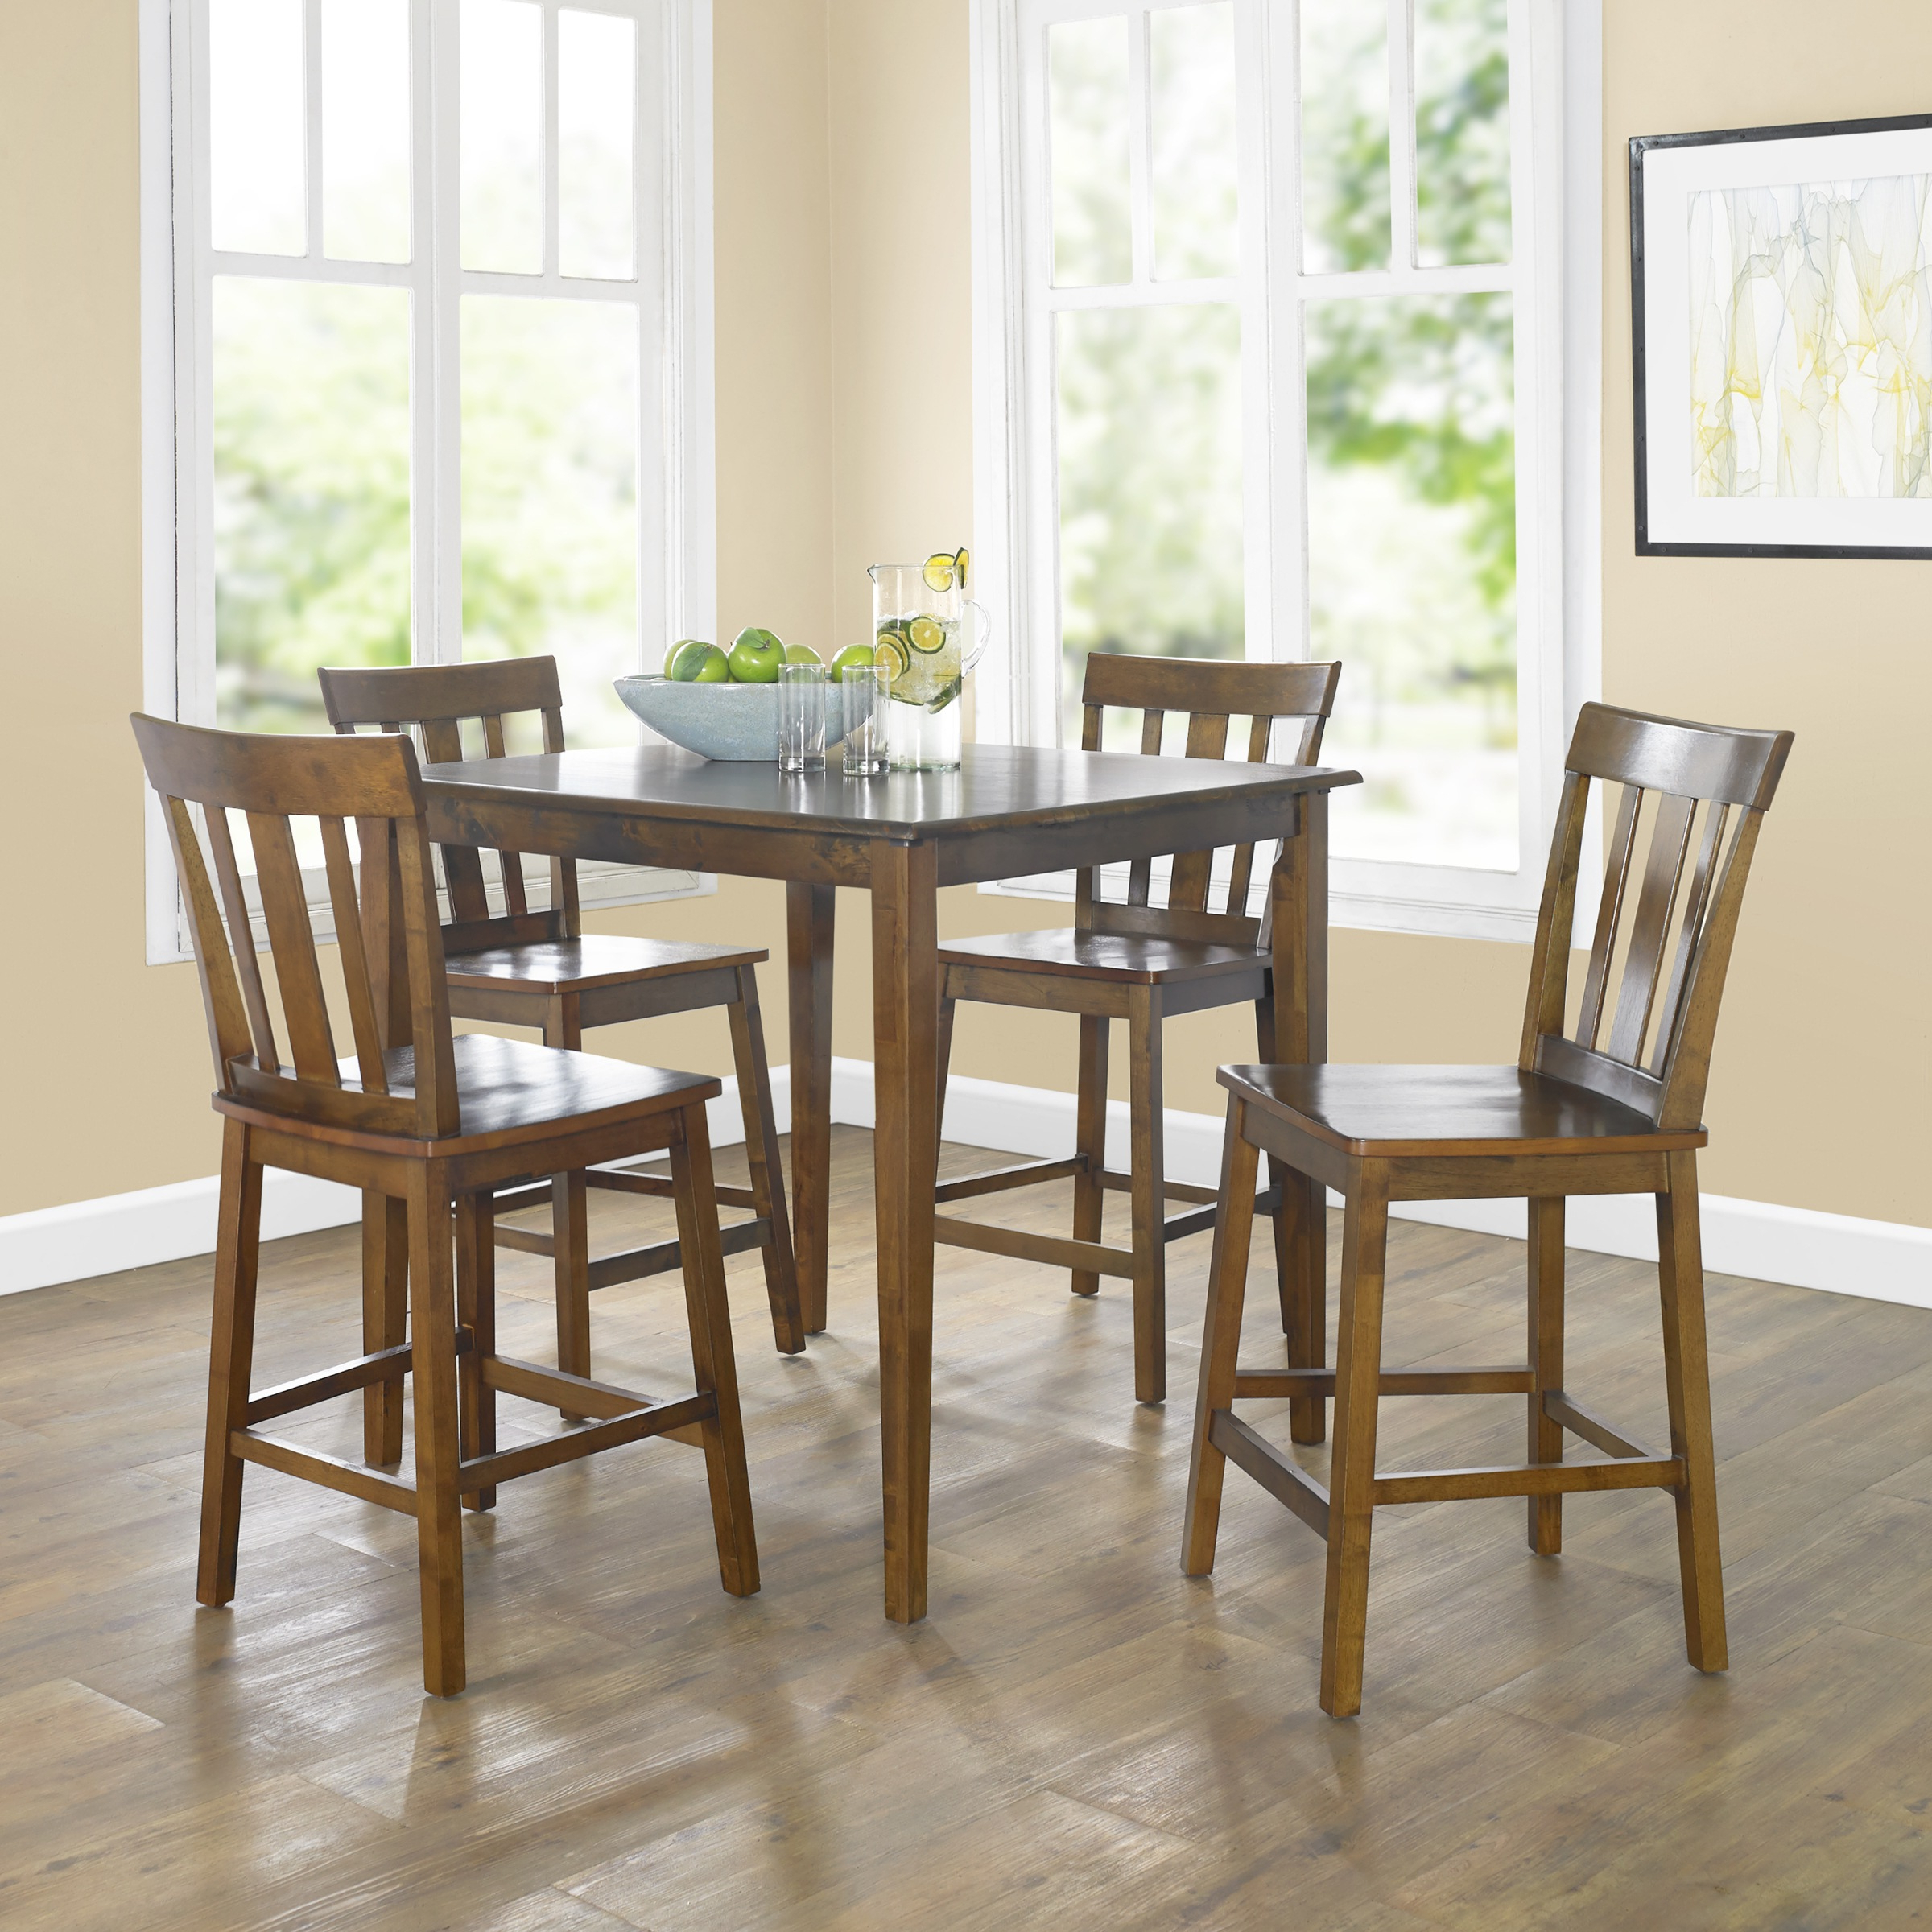 Latest Mainstays 5 Piece Mission Counter Height Dining Set – Walmart With Goodman 5 Piece Solid Wood Dining Sets (Set Of 5) (View 15 of 20)